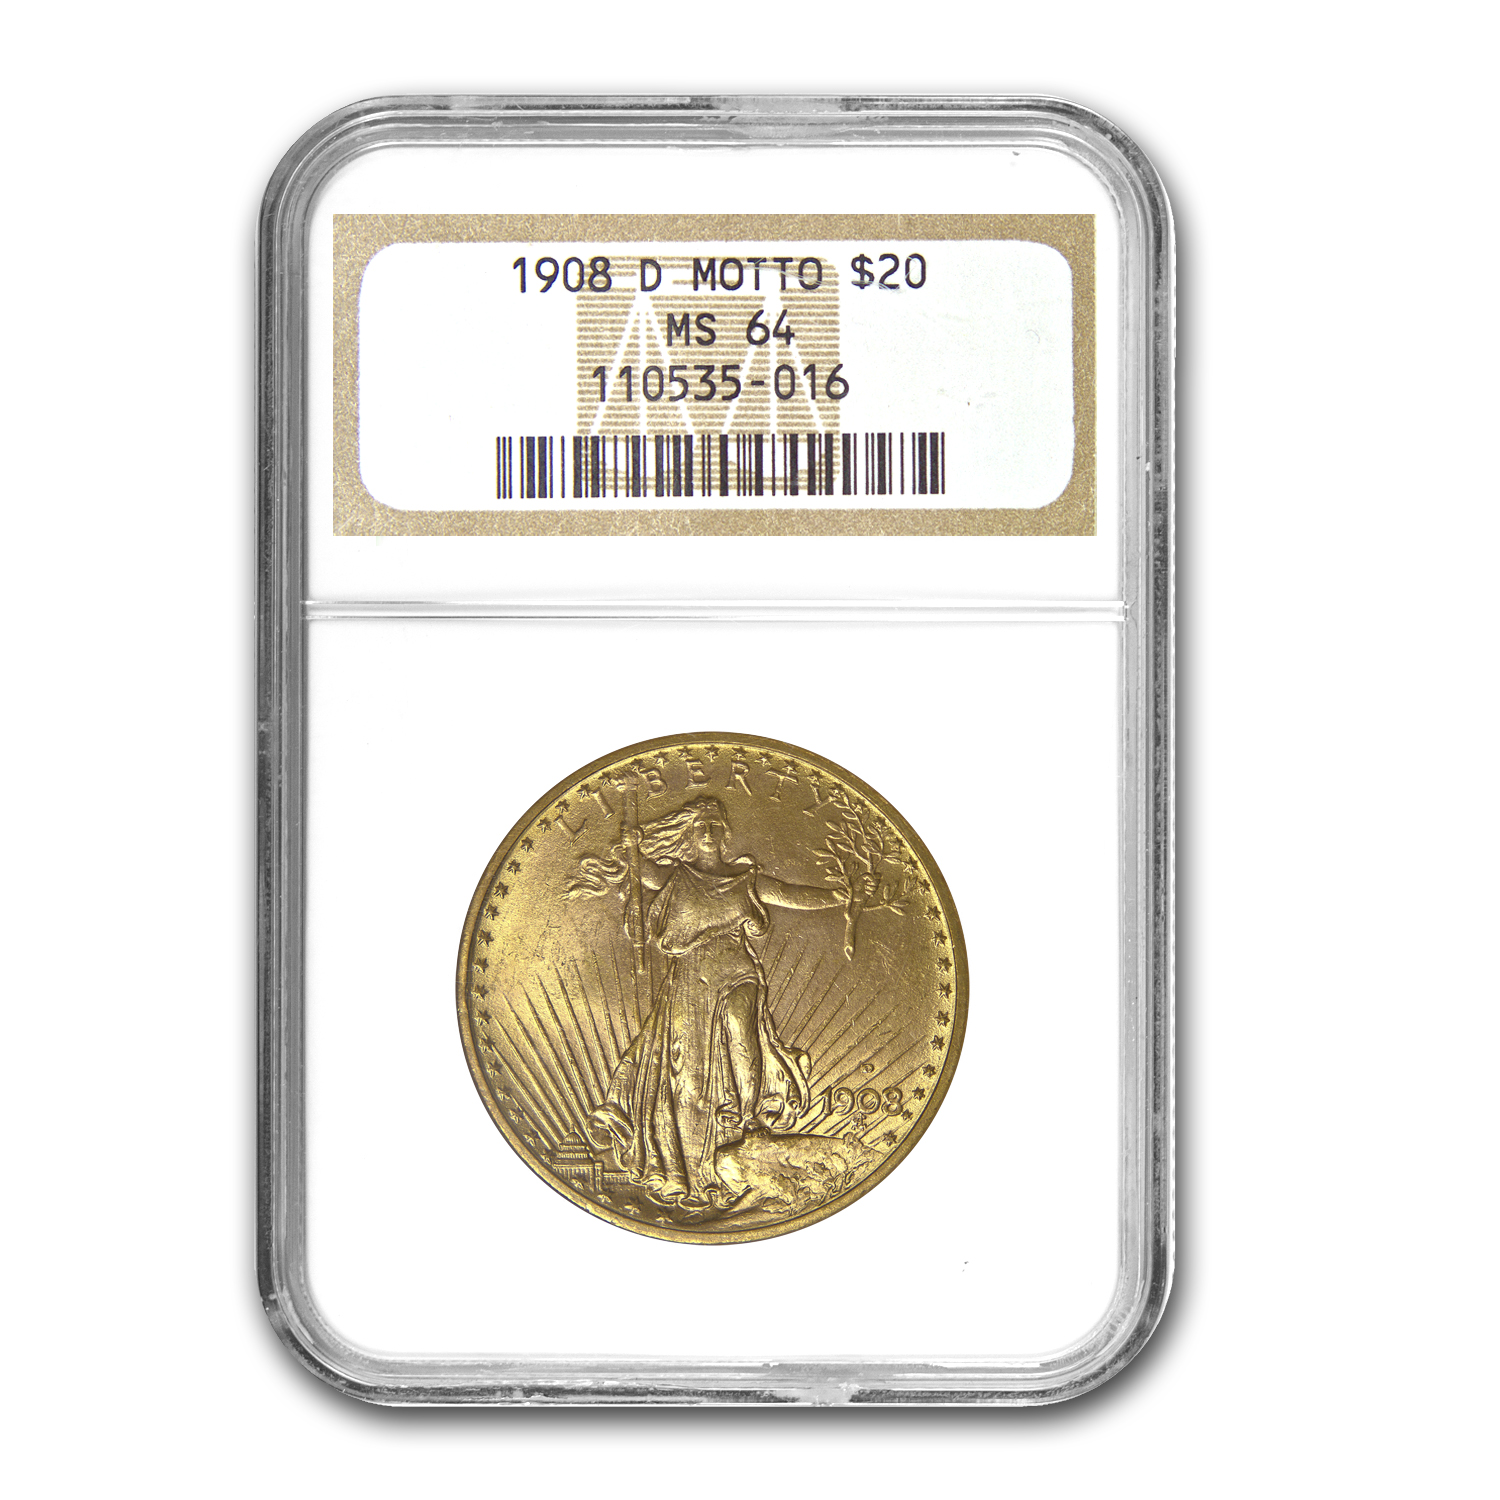 1908-D $20 St. Gaudens Gold w/Motto MS-64 NGC